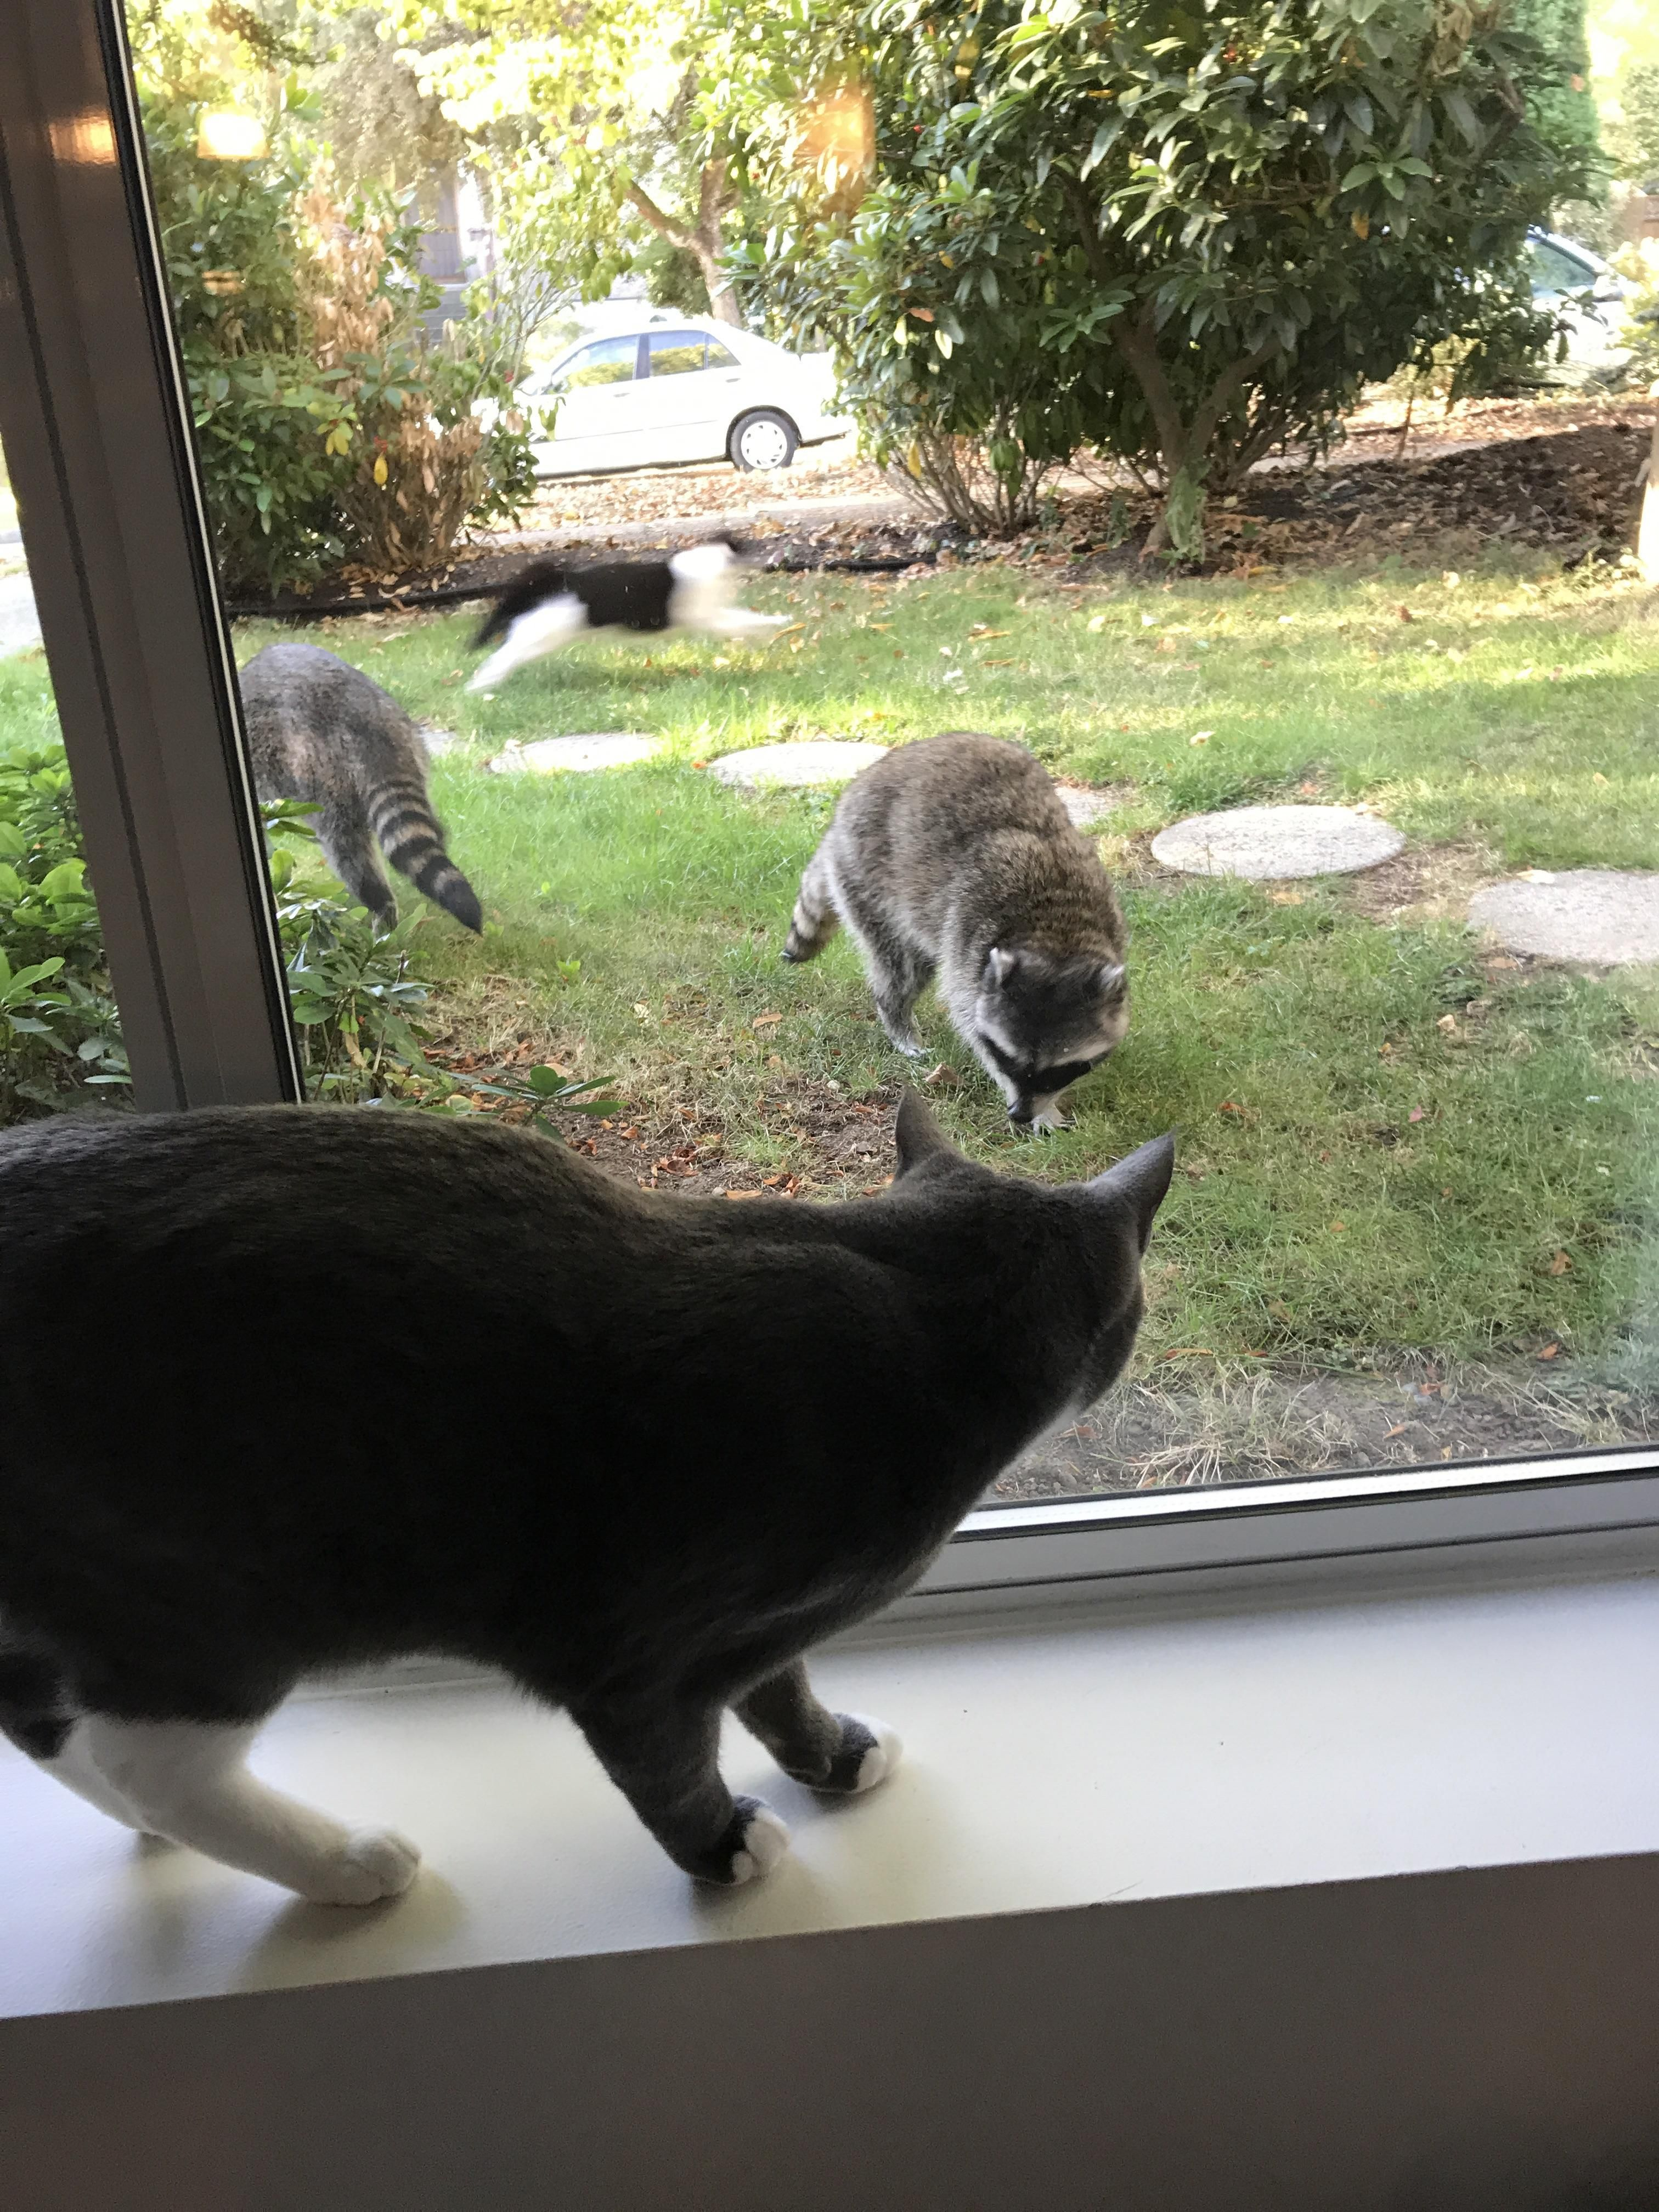 Cat meets raccoons. B/W cat getting the heck out. http://ift.tt/2jxyNYH